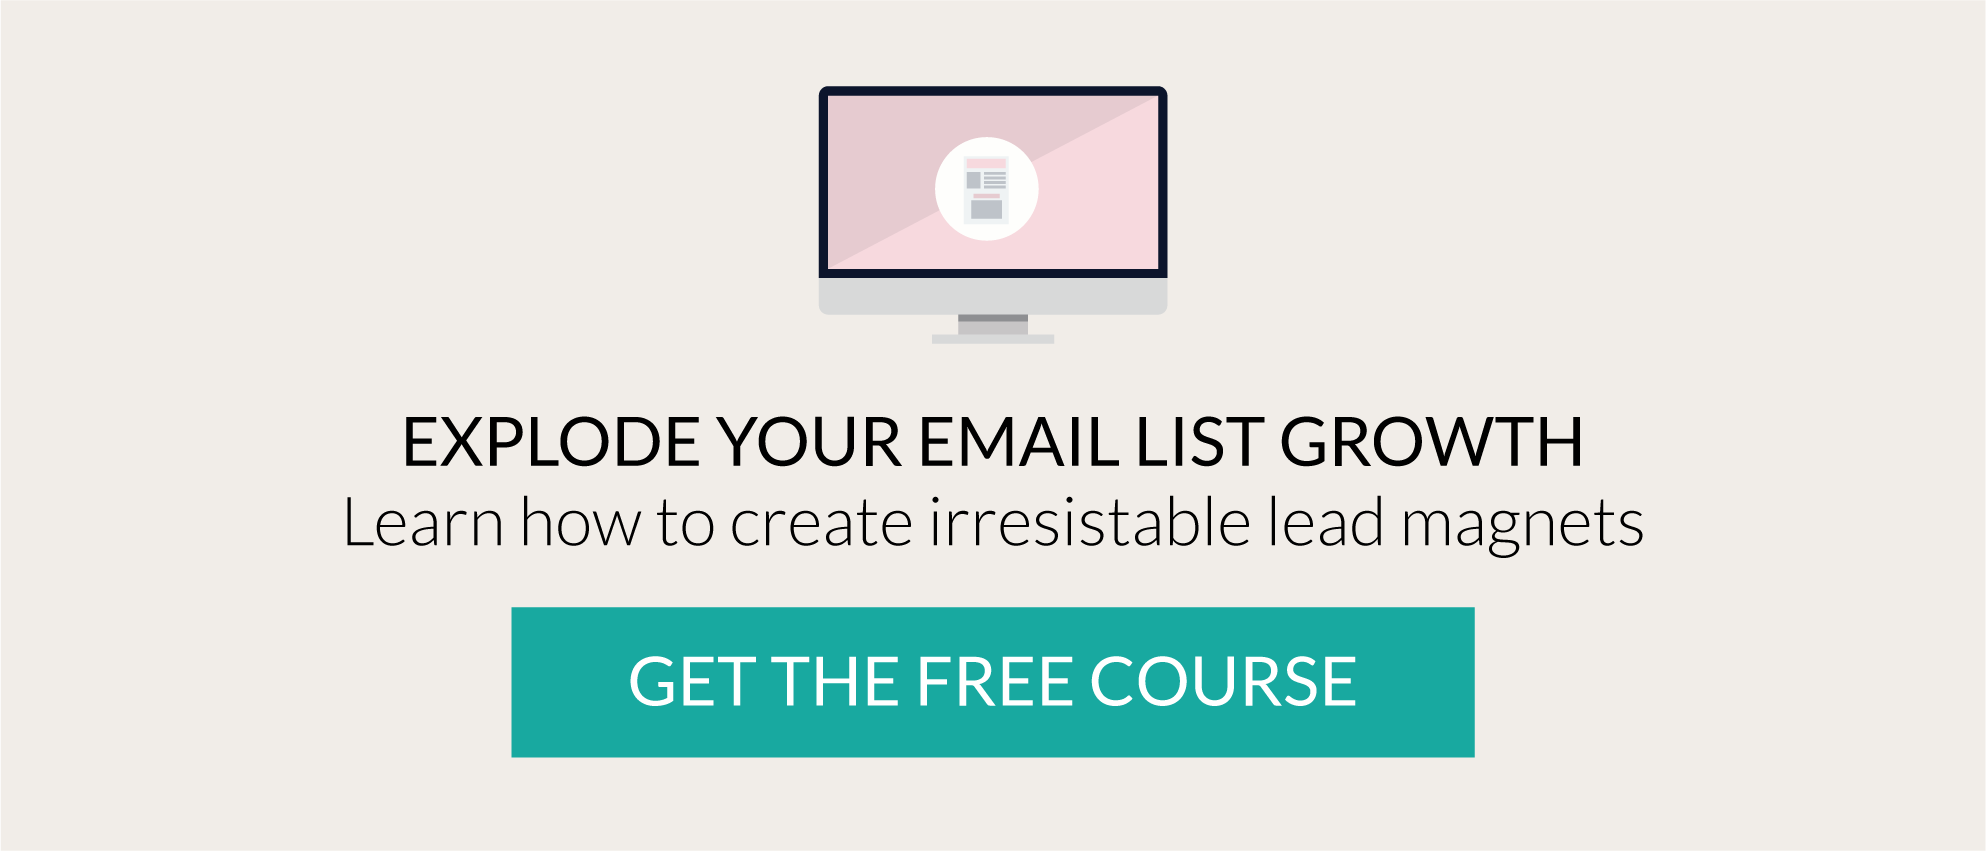 Learn how to create compelling lead magnets - free course